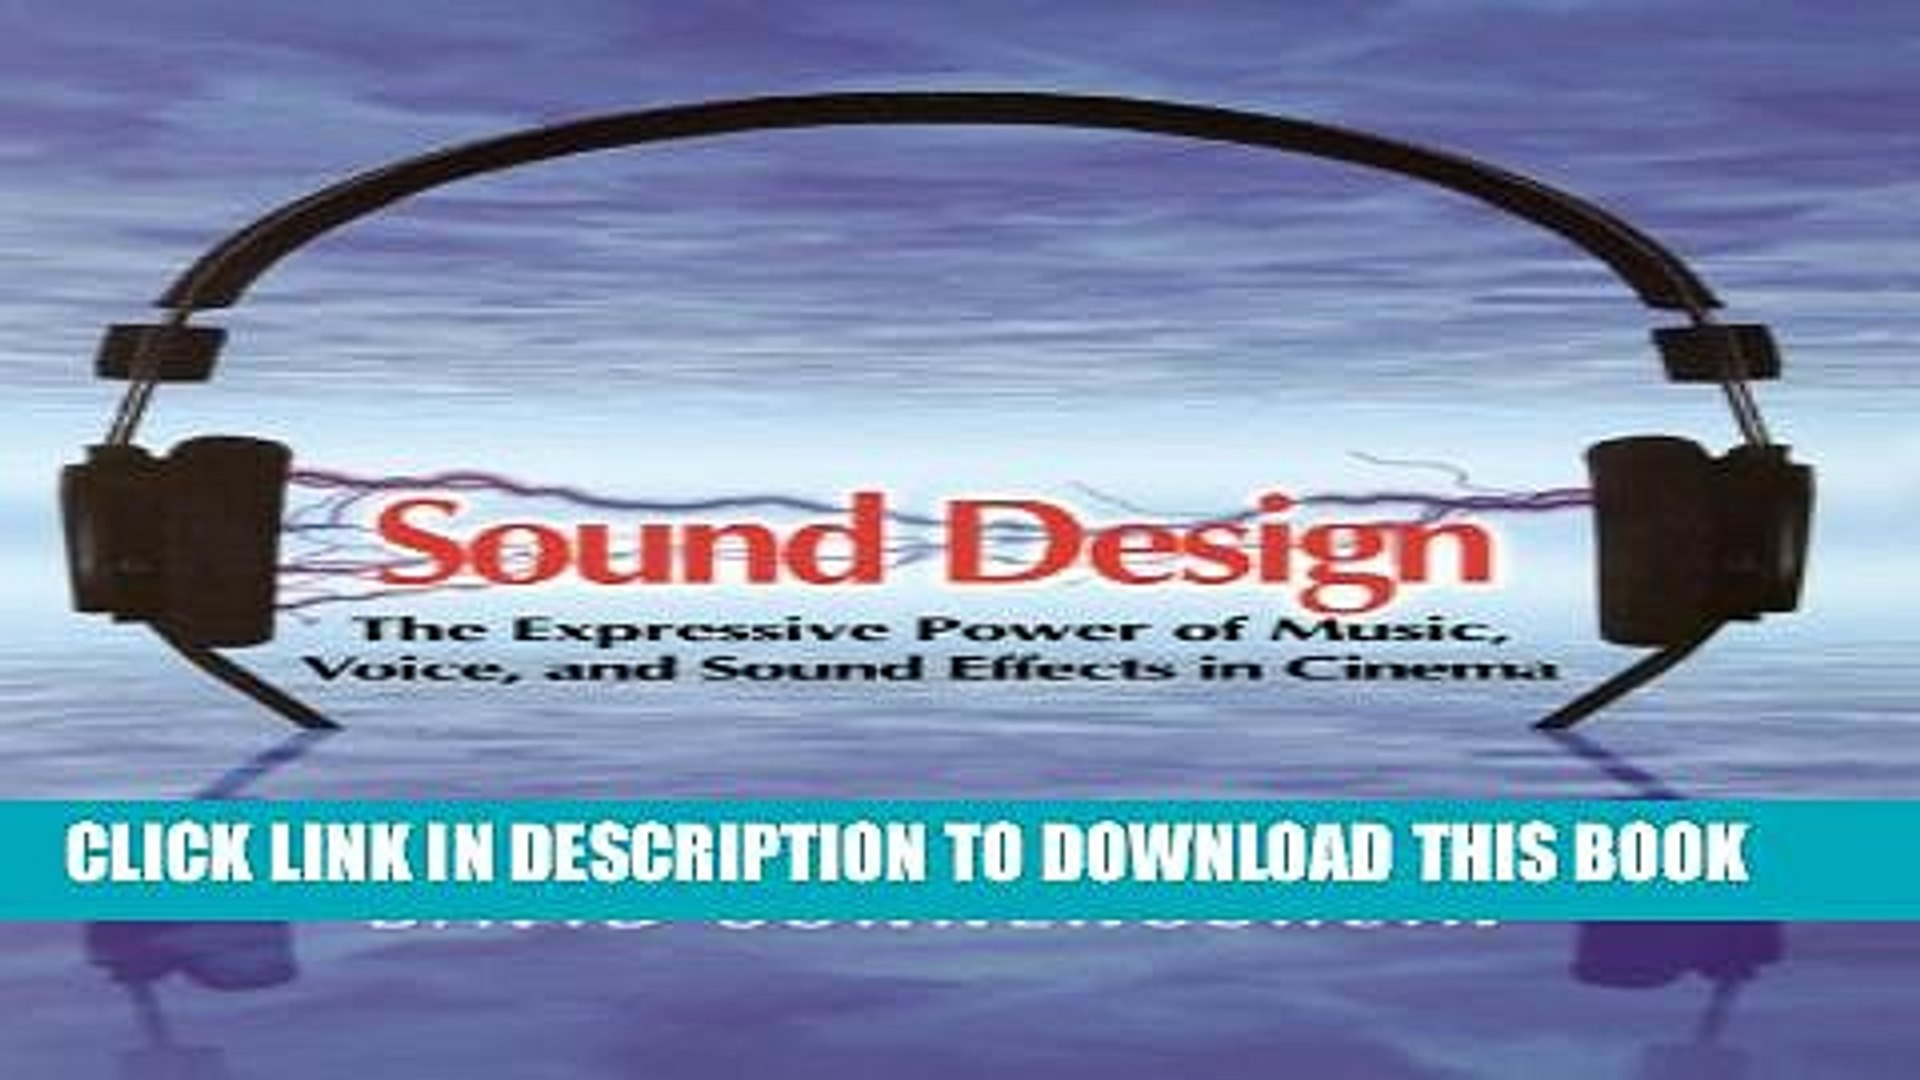 [PDF] Sound Design: The Expressive Power of Music, Voice and Sound Effects in Cinema Full Online